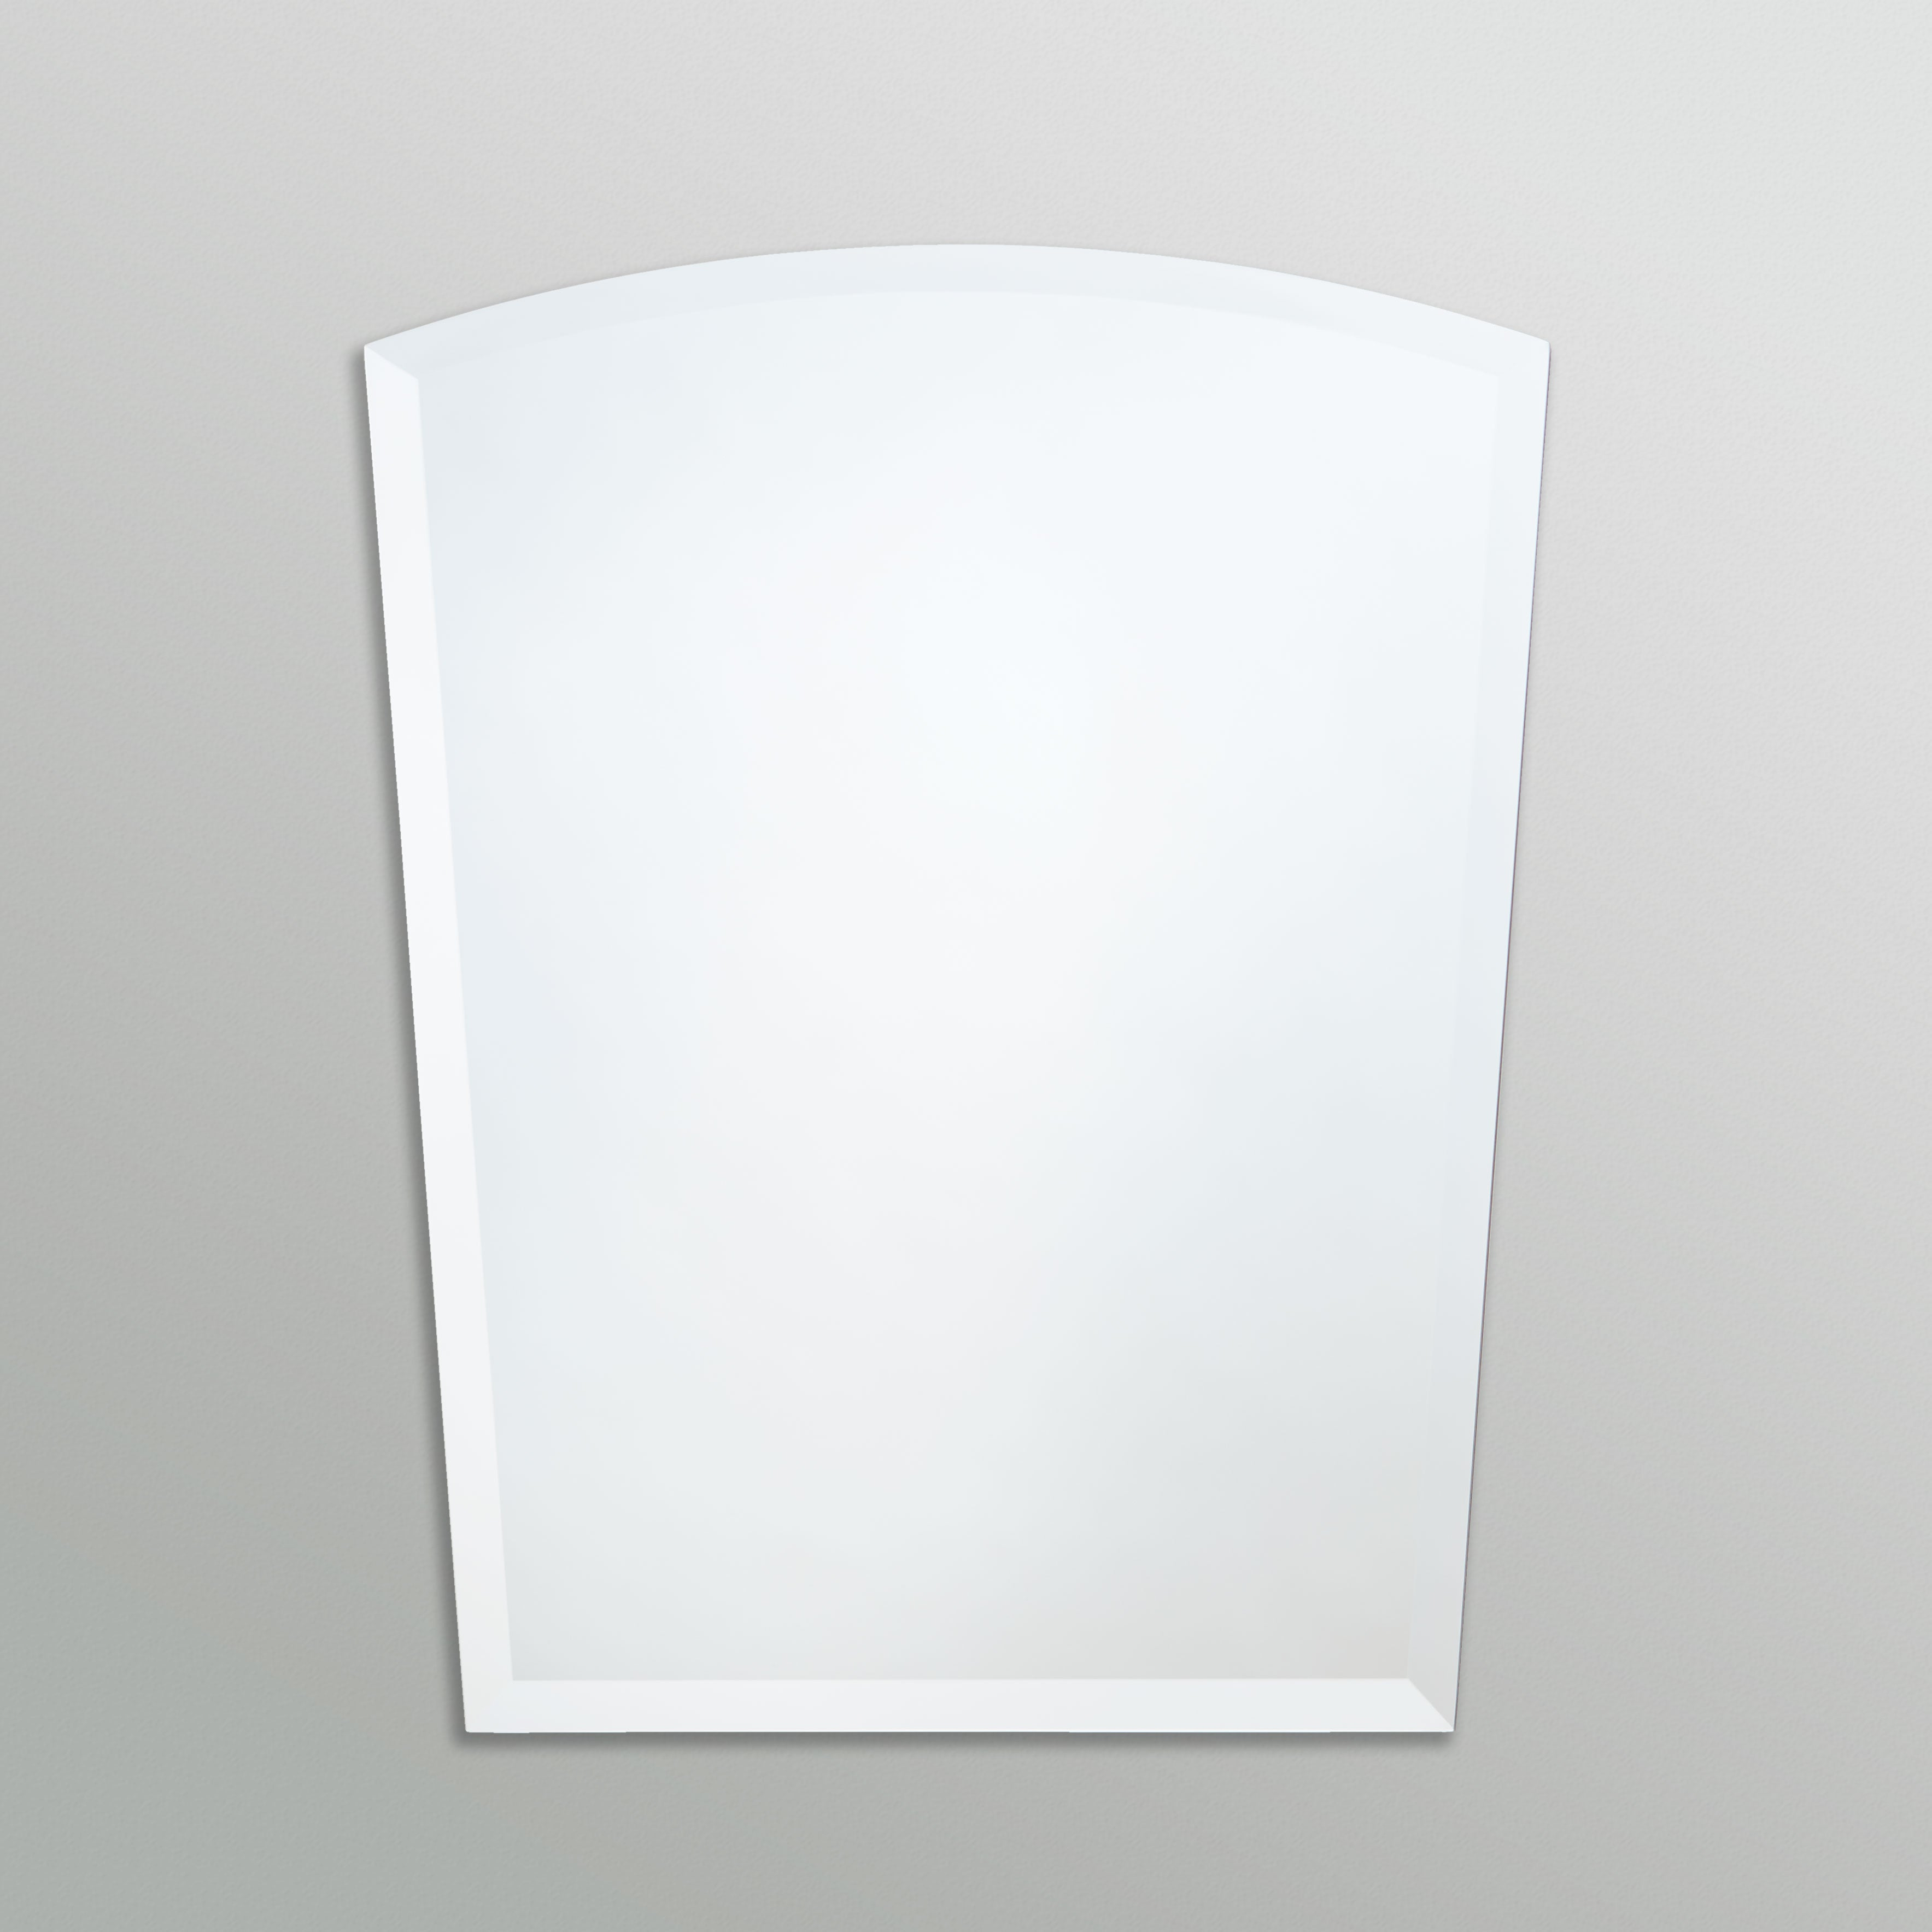 Better Bevel Frameless Beveled Round-Top Arched Mirror on grey wall